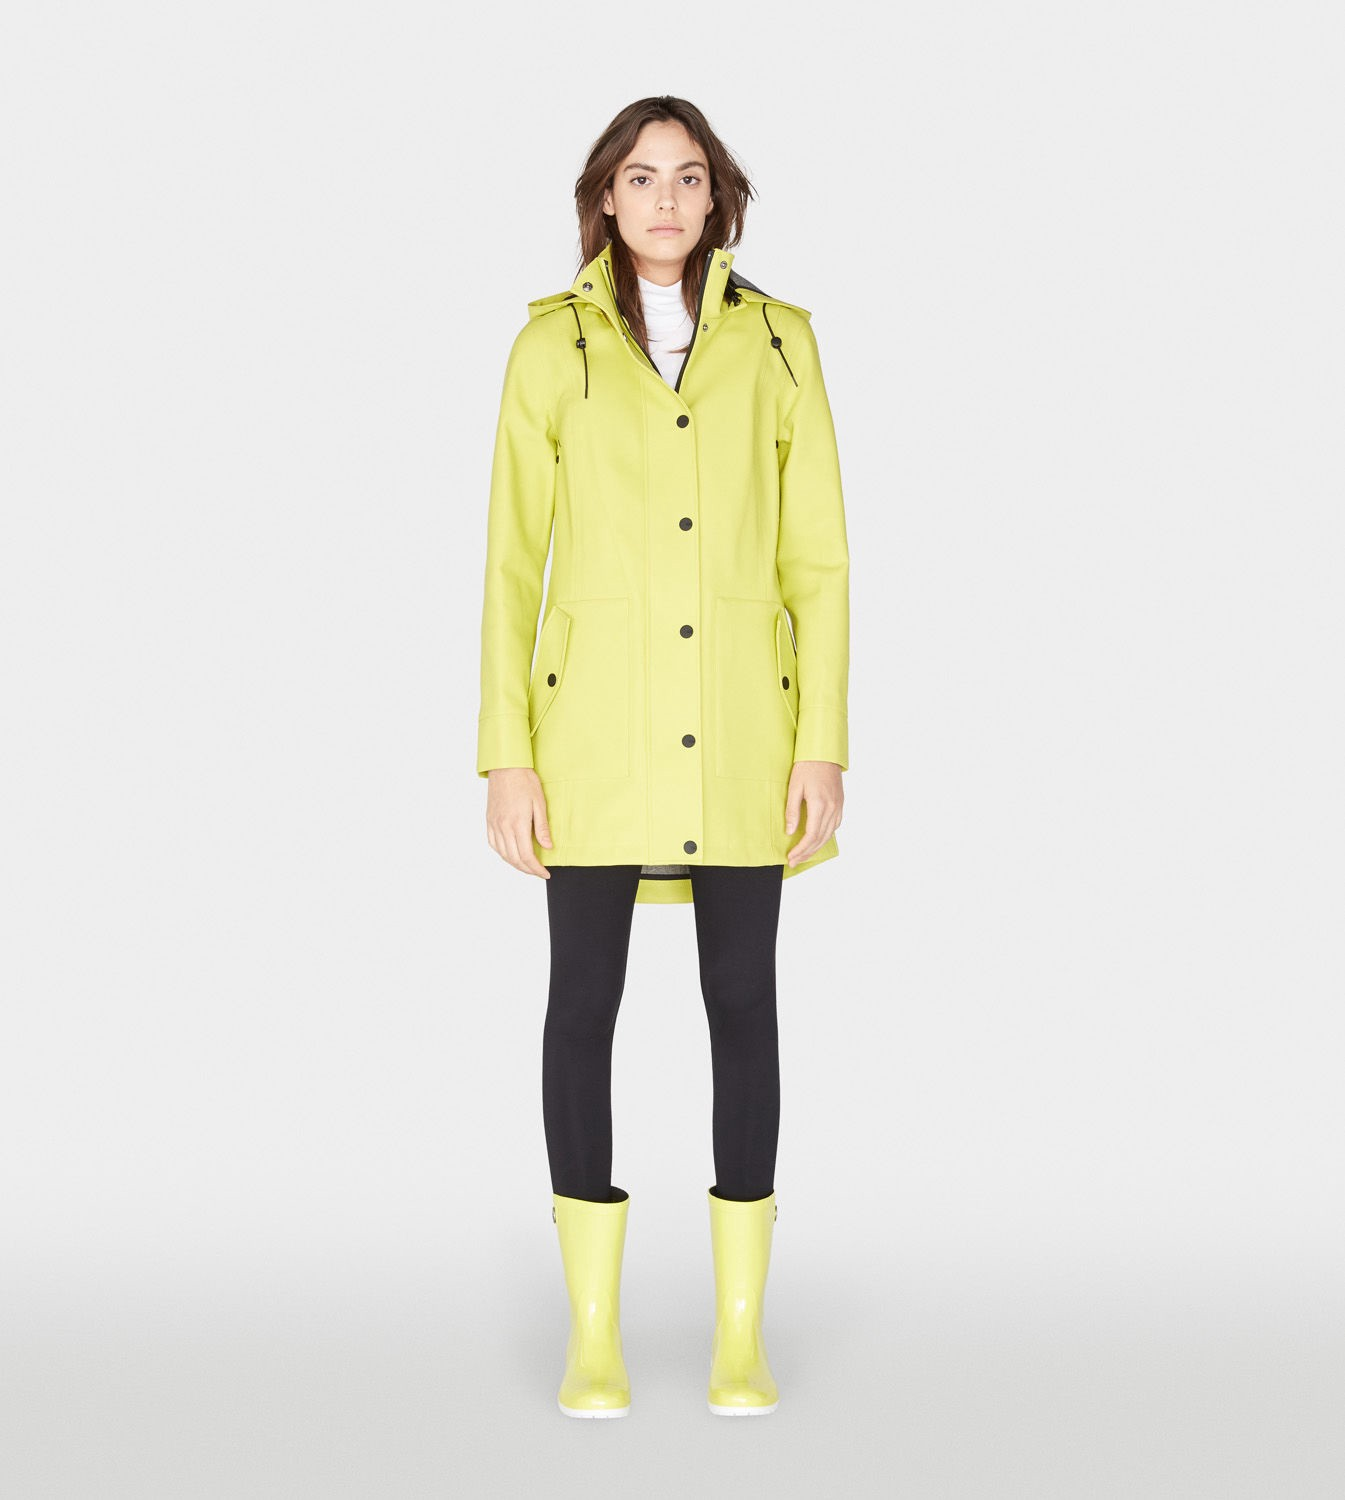 a51c7b99ed78 Ugg Weather-Ready Rain Jacket In Neon Lime